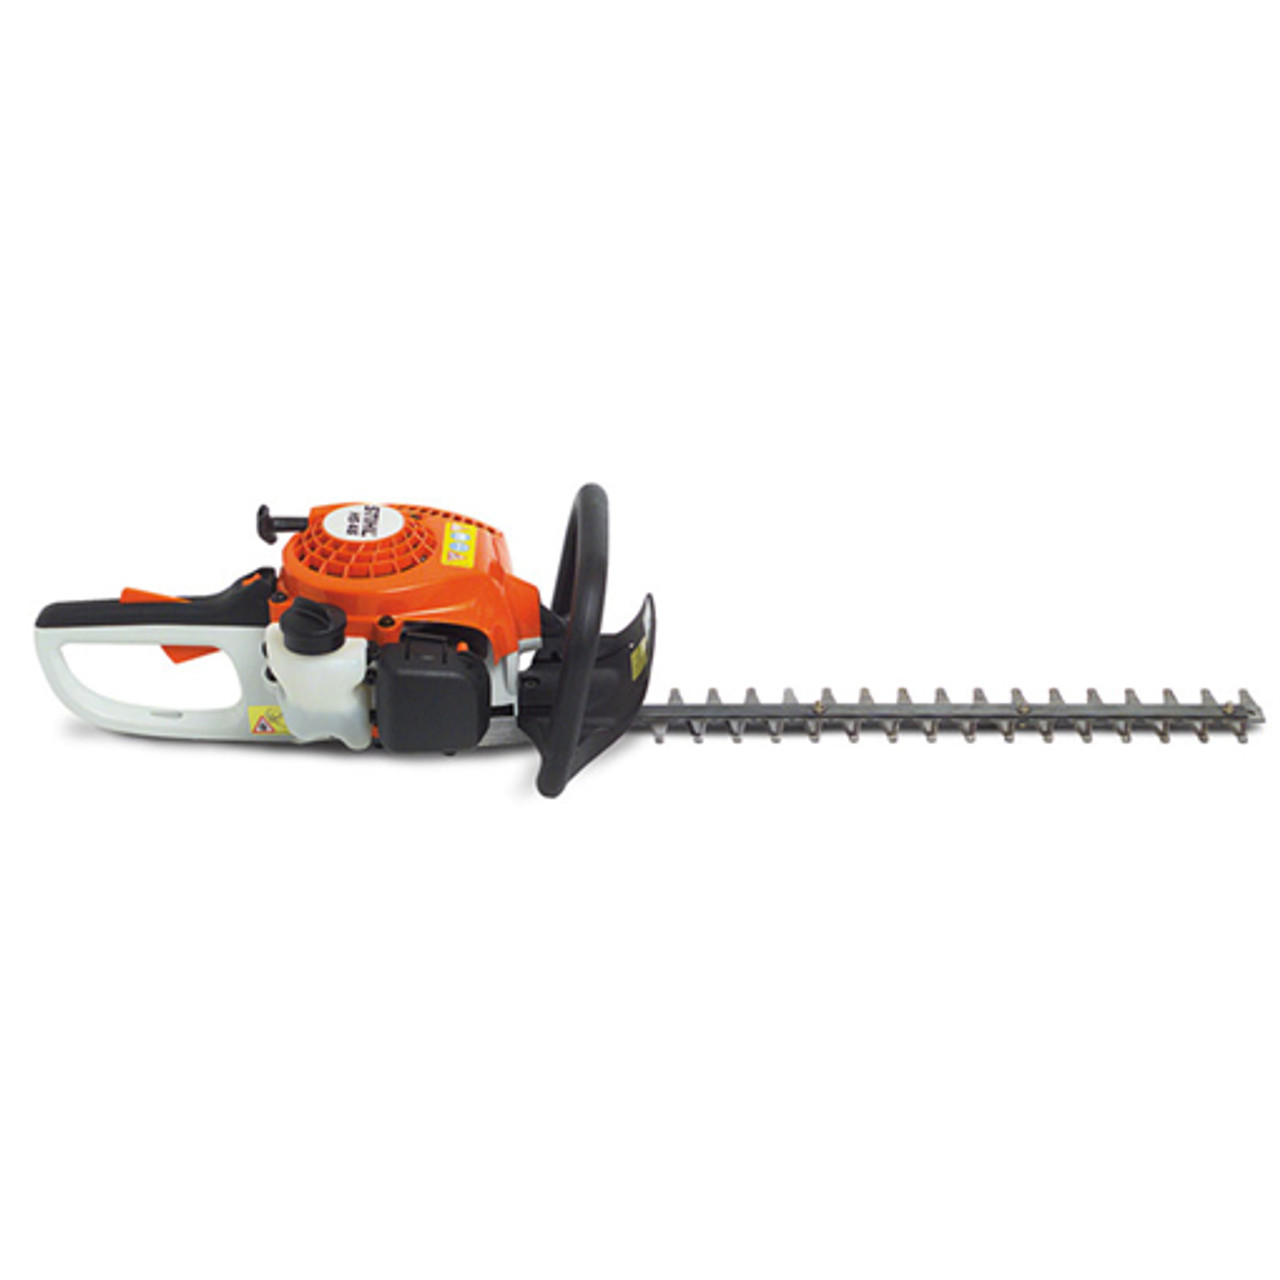 "STIHL HS 45-18 27.2cc Hedge Trimmer w/ 18"" Double-Sided Blades Image"